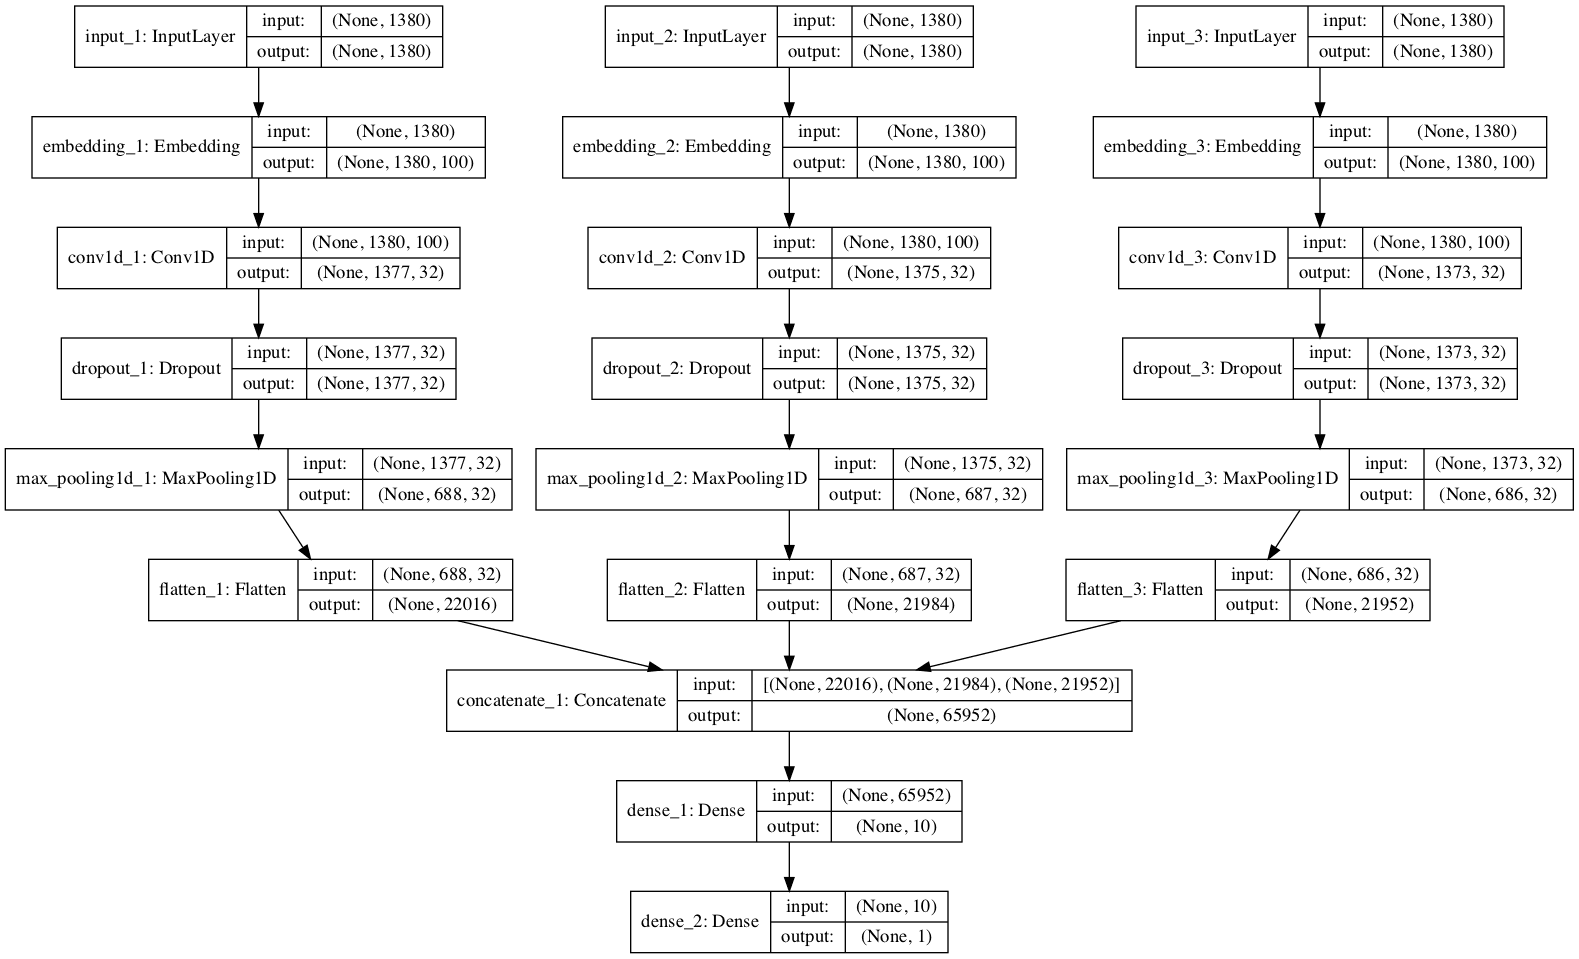 Plot of the Multichannel Convolutional Neural Network For Text